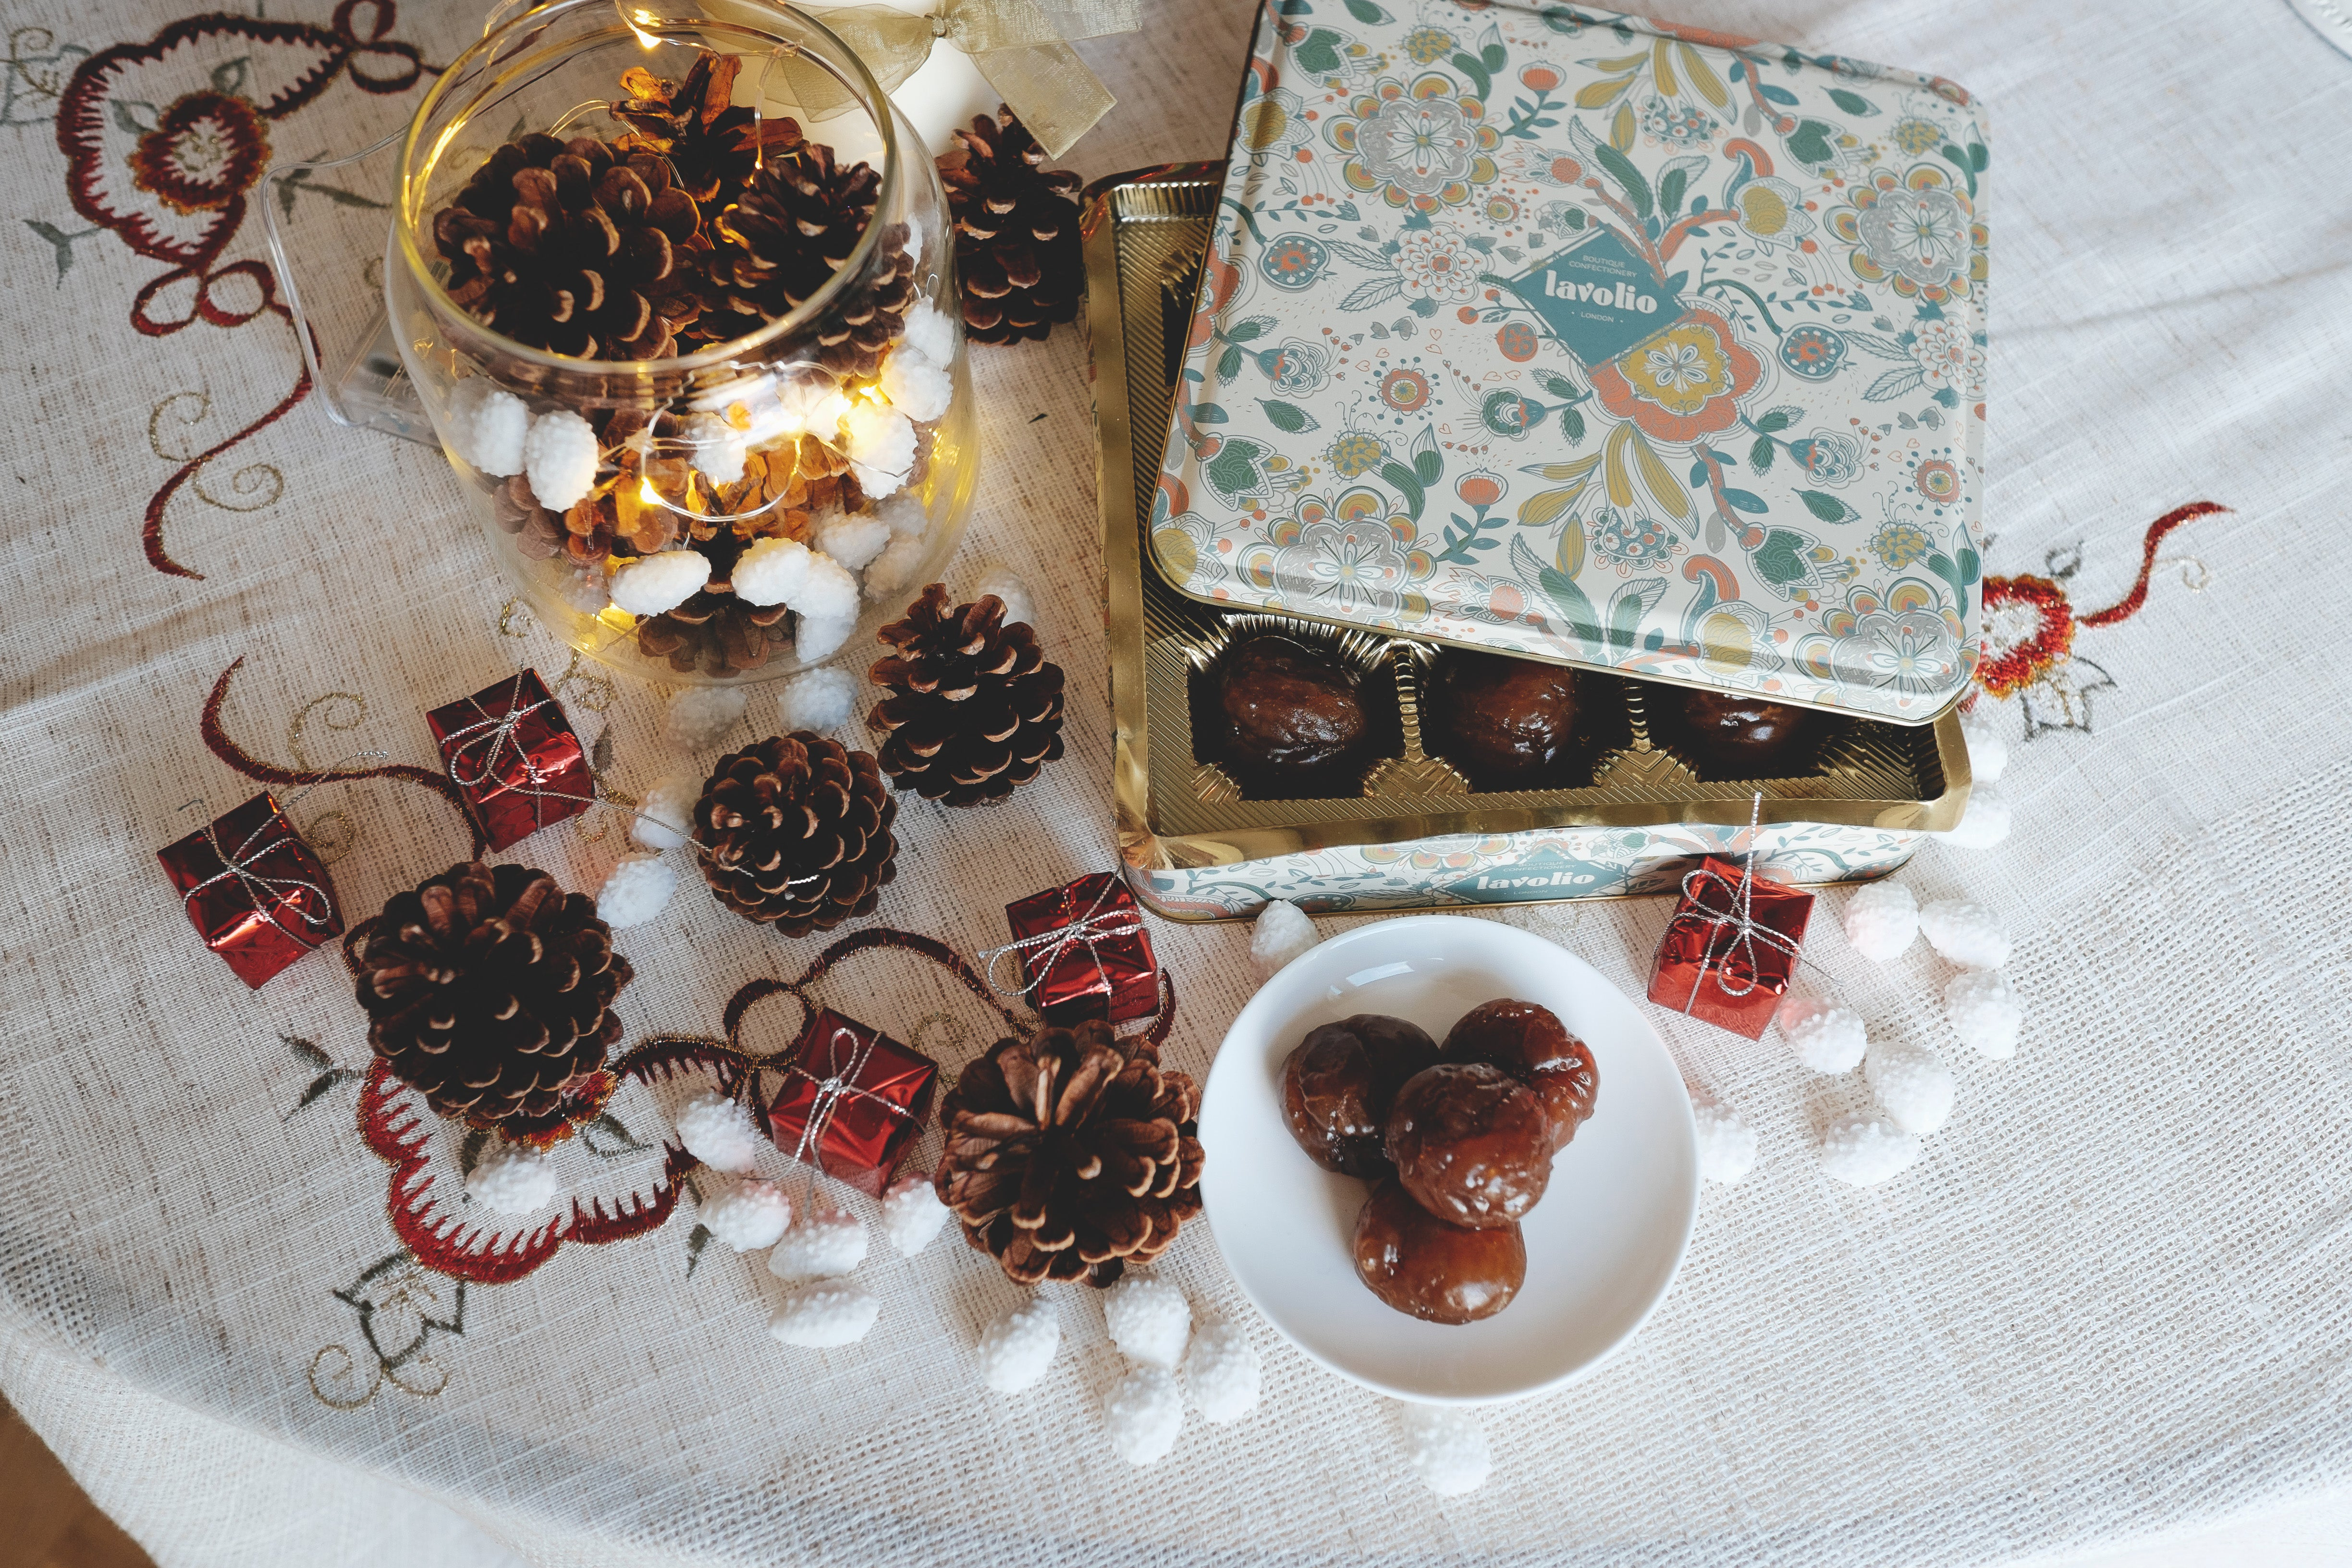 Lavolio London confectionery present christmas gifts italian